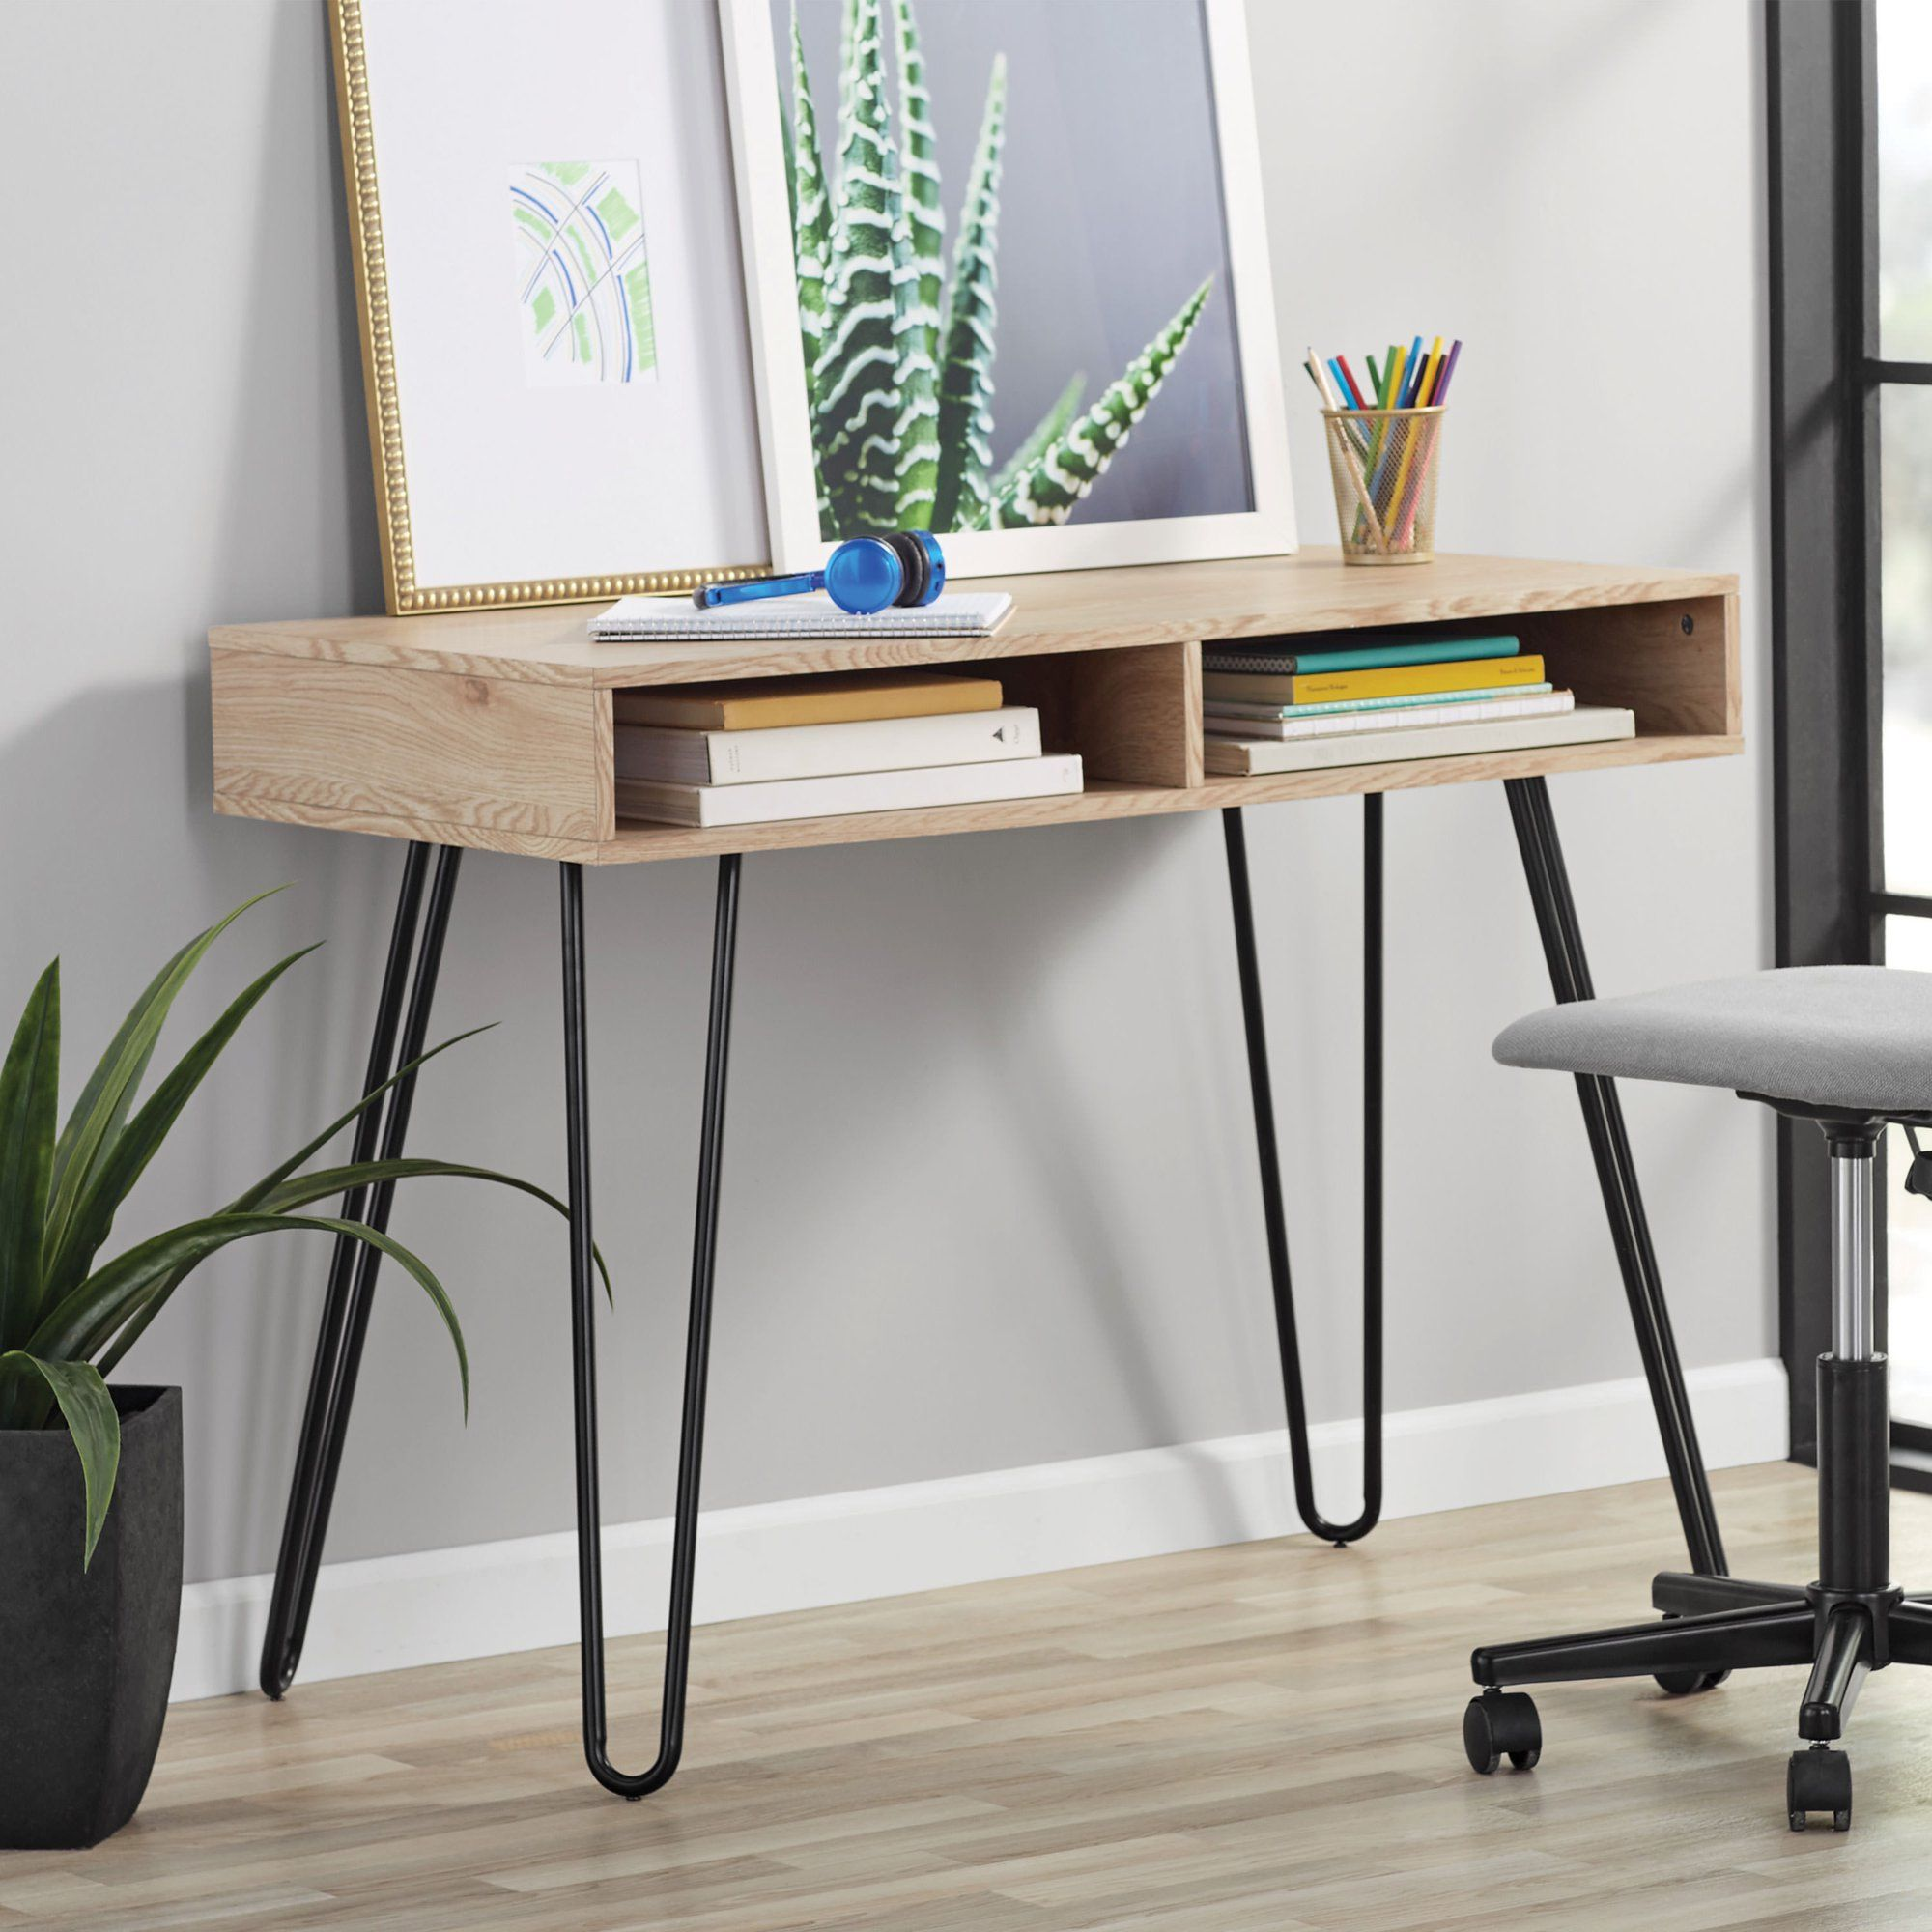 Mainstays Hairpin Writing Desk Multiple Finishes Walmart Com In 2020 Desk With Drawers Desks For Small Spaces Writing Desk With Drawers